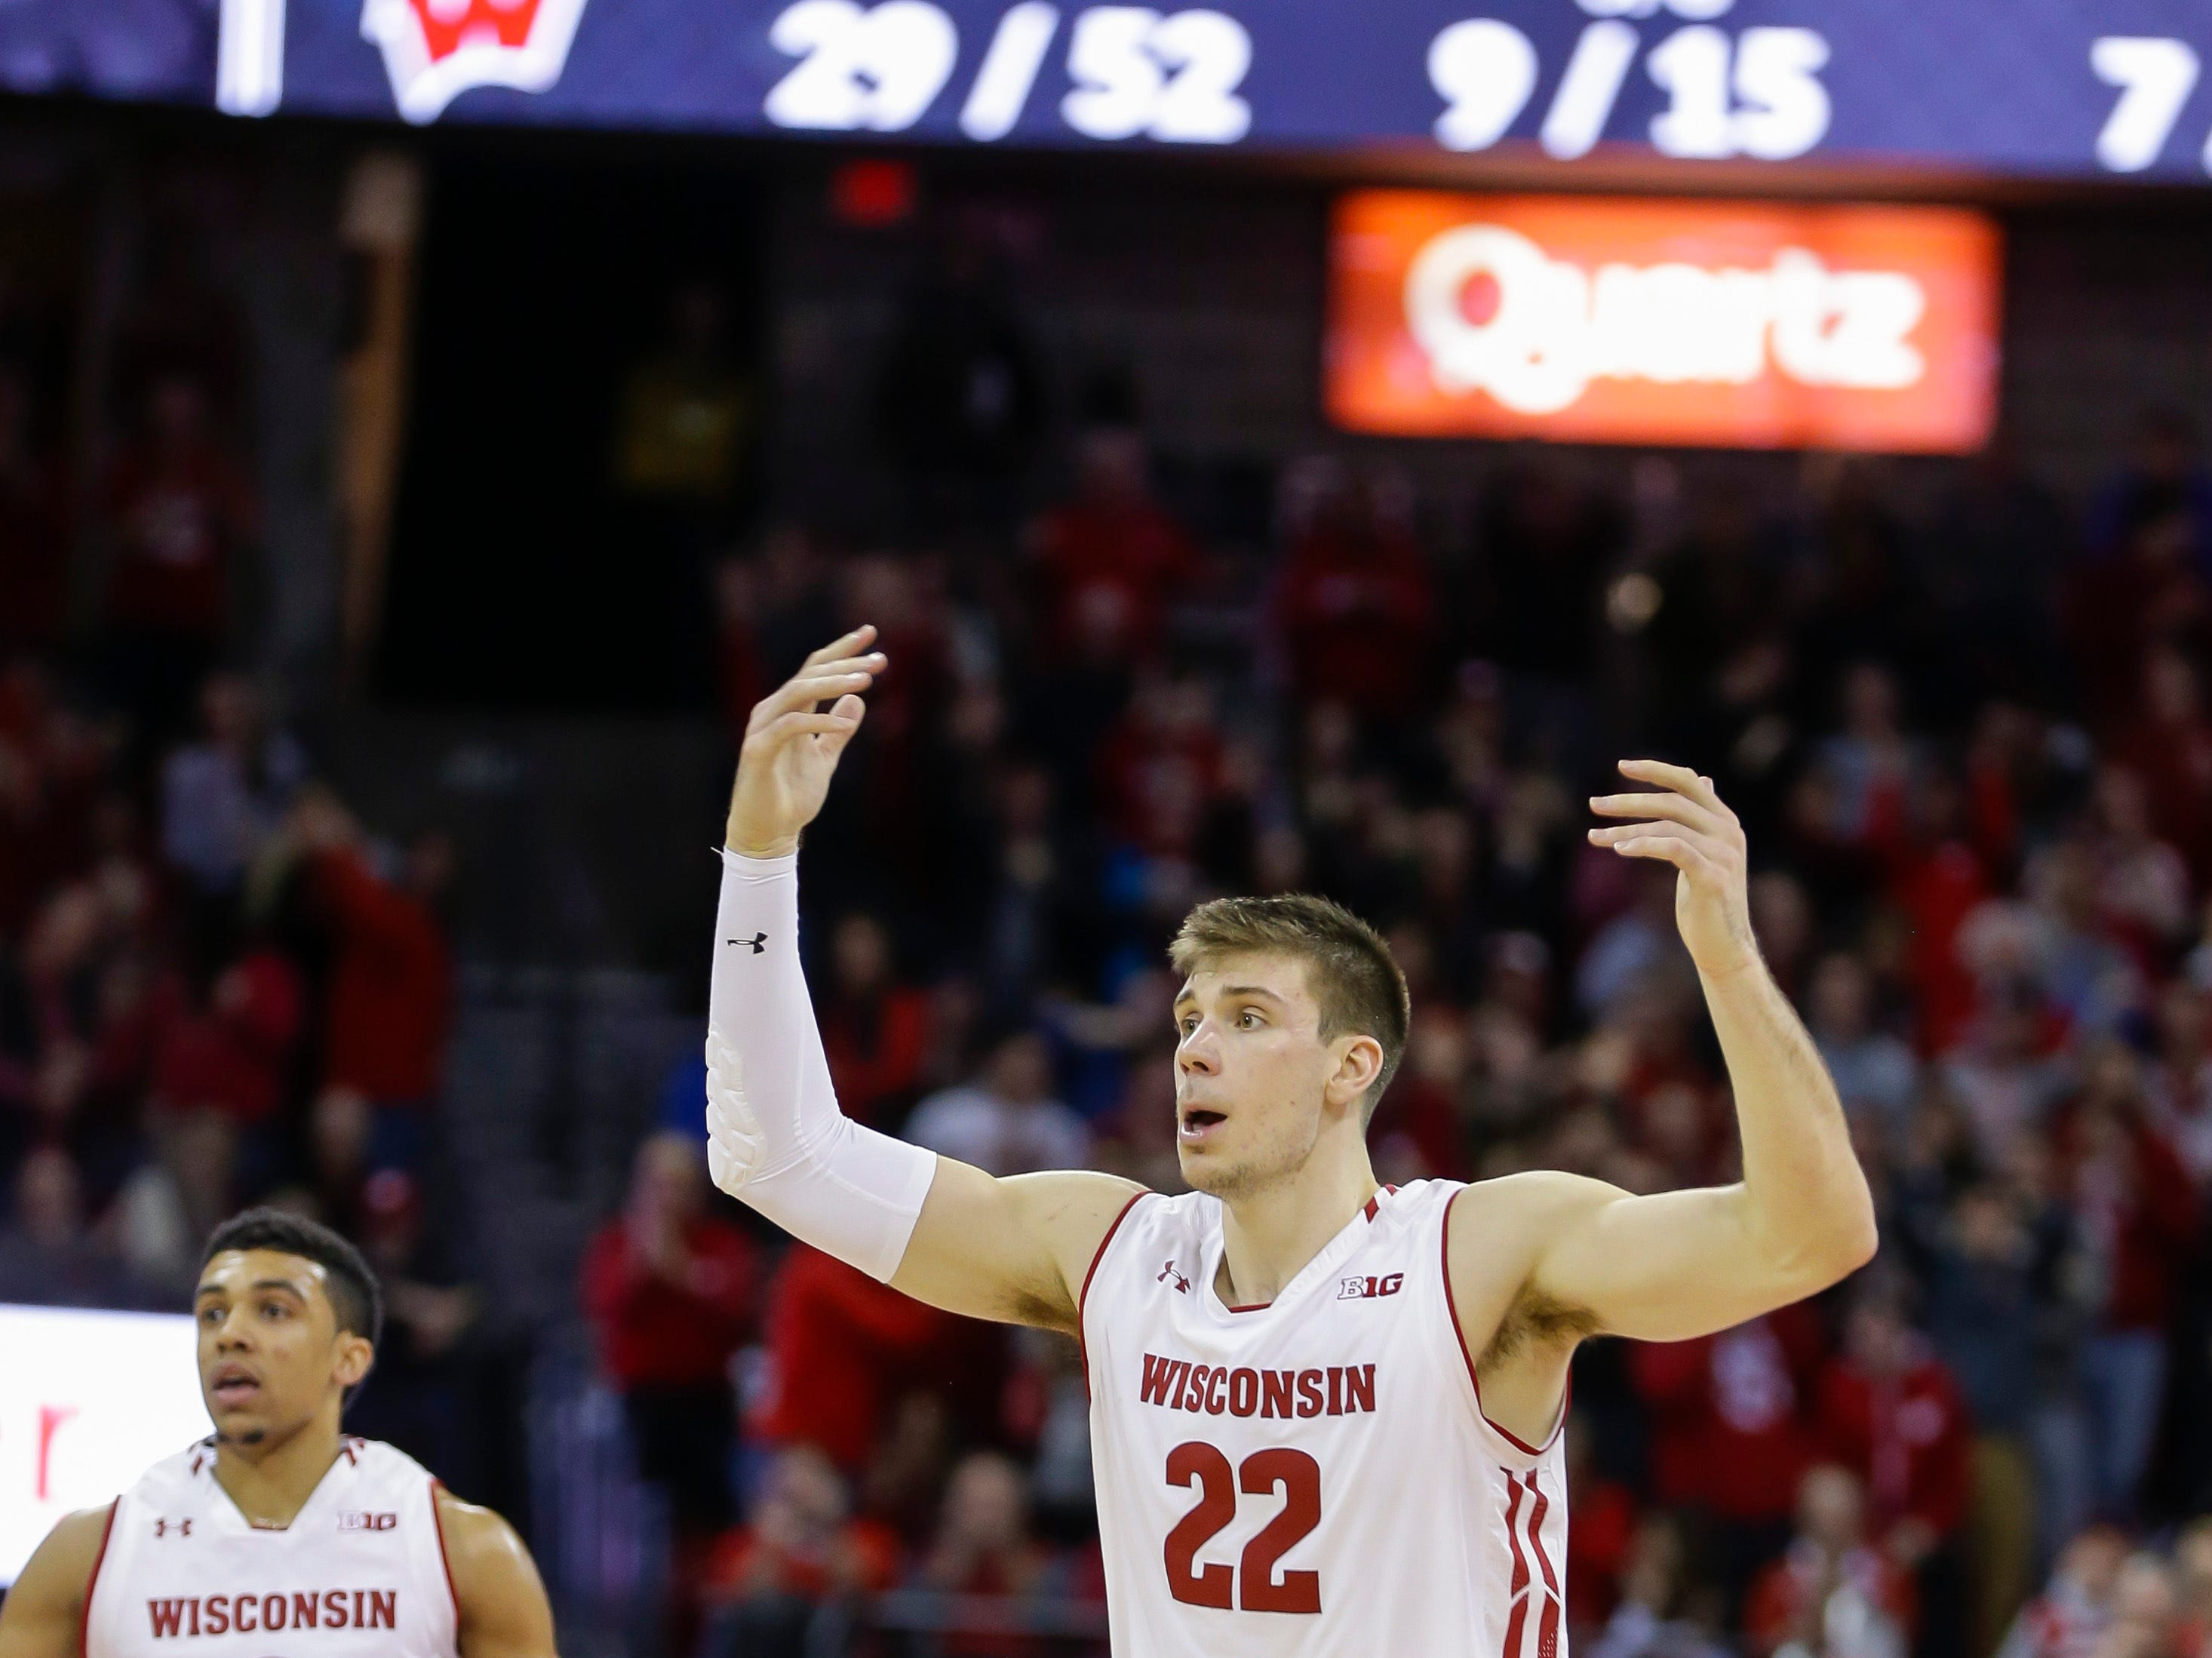 Wisconsin's Ethan Happ (22) during the second half of an NCAA college basketball game against Purdue Friday, Jan. 11, 2019, in Madison, Wis. Purdue won 84-80 in overtime. (AP Photo/Andy Manis)